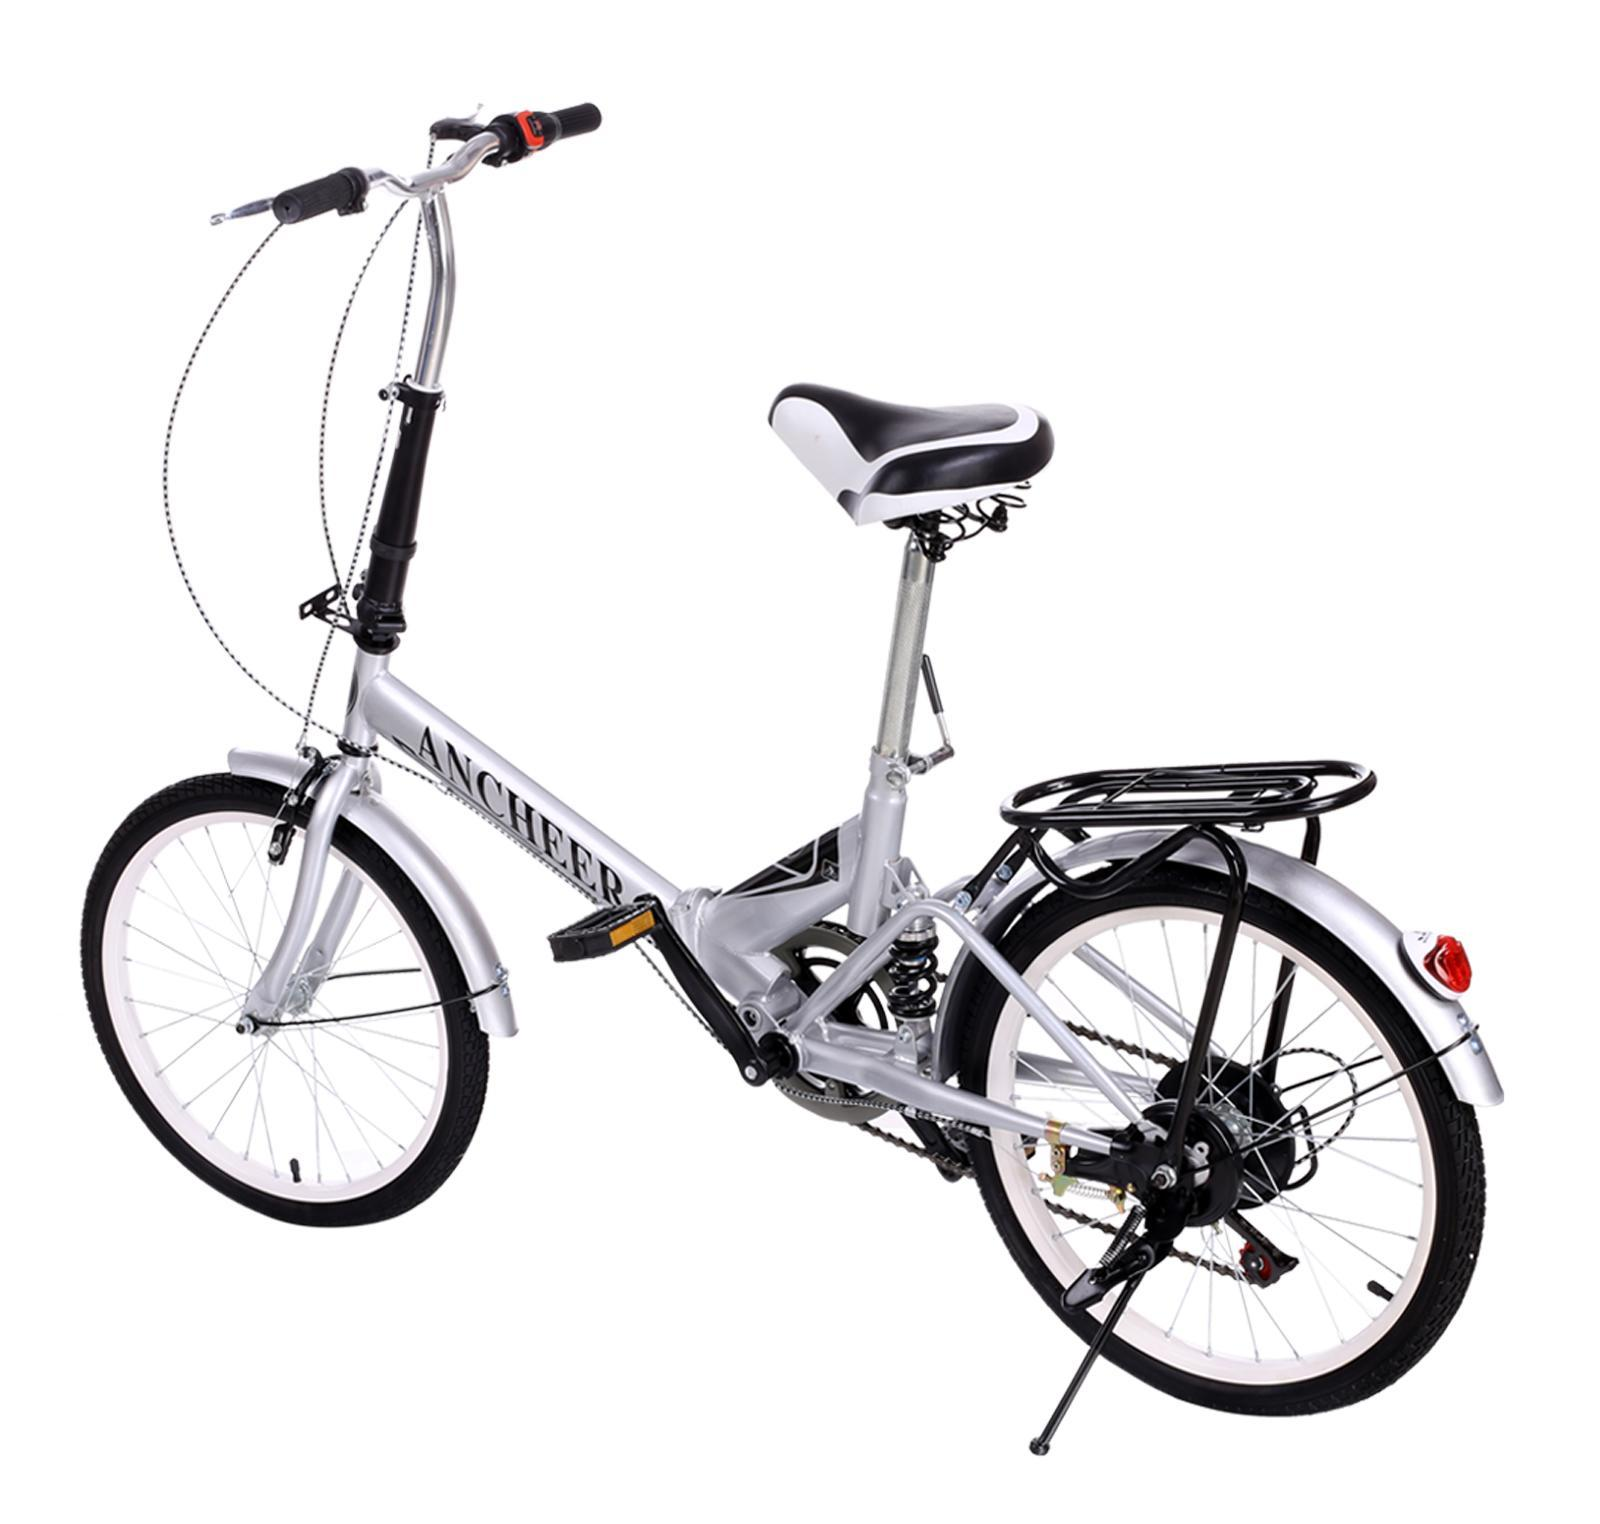 Silver 20 Inch Bicycle 6 Speed Foldable Folding Bike